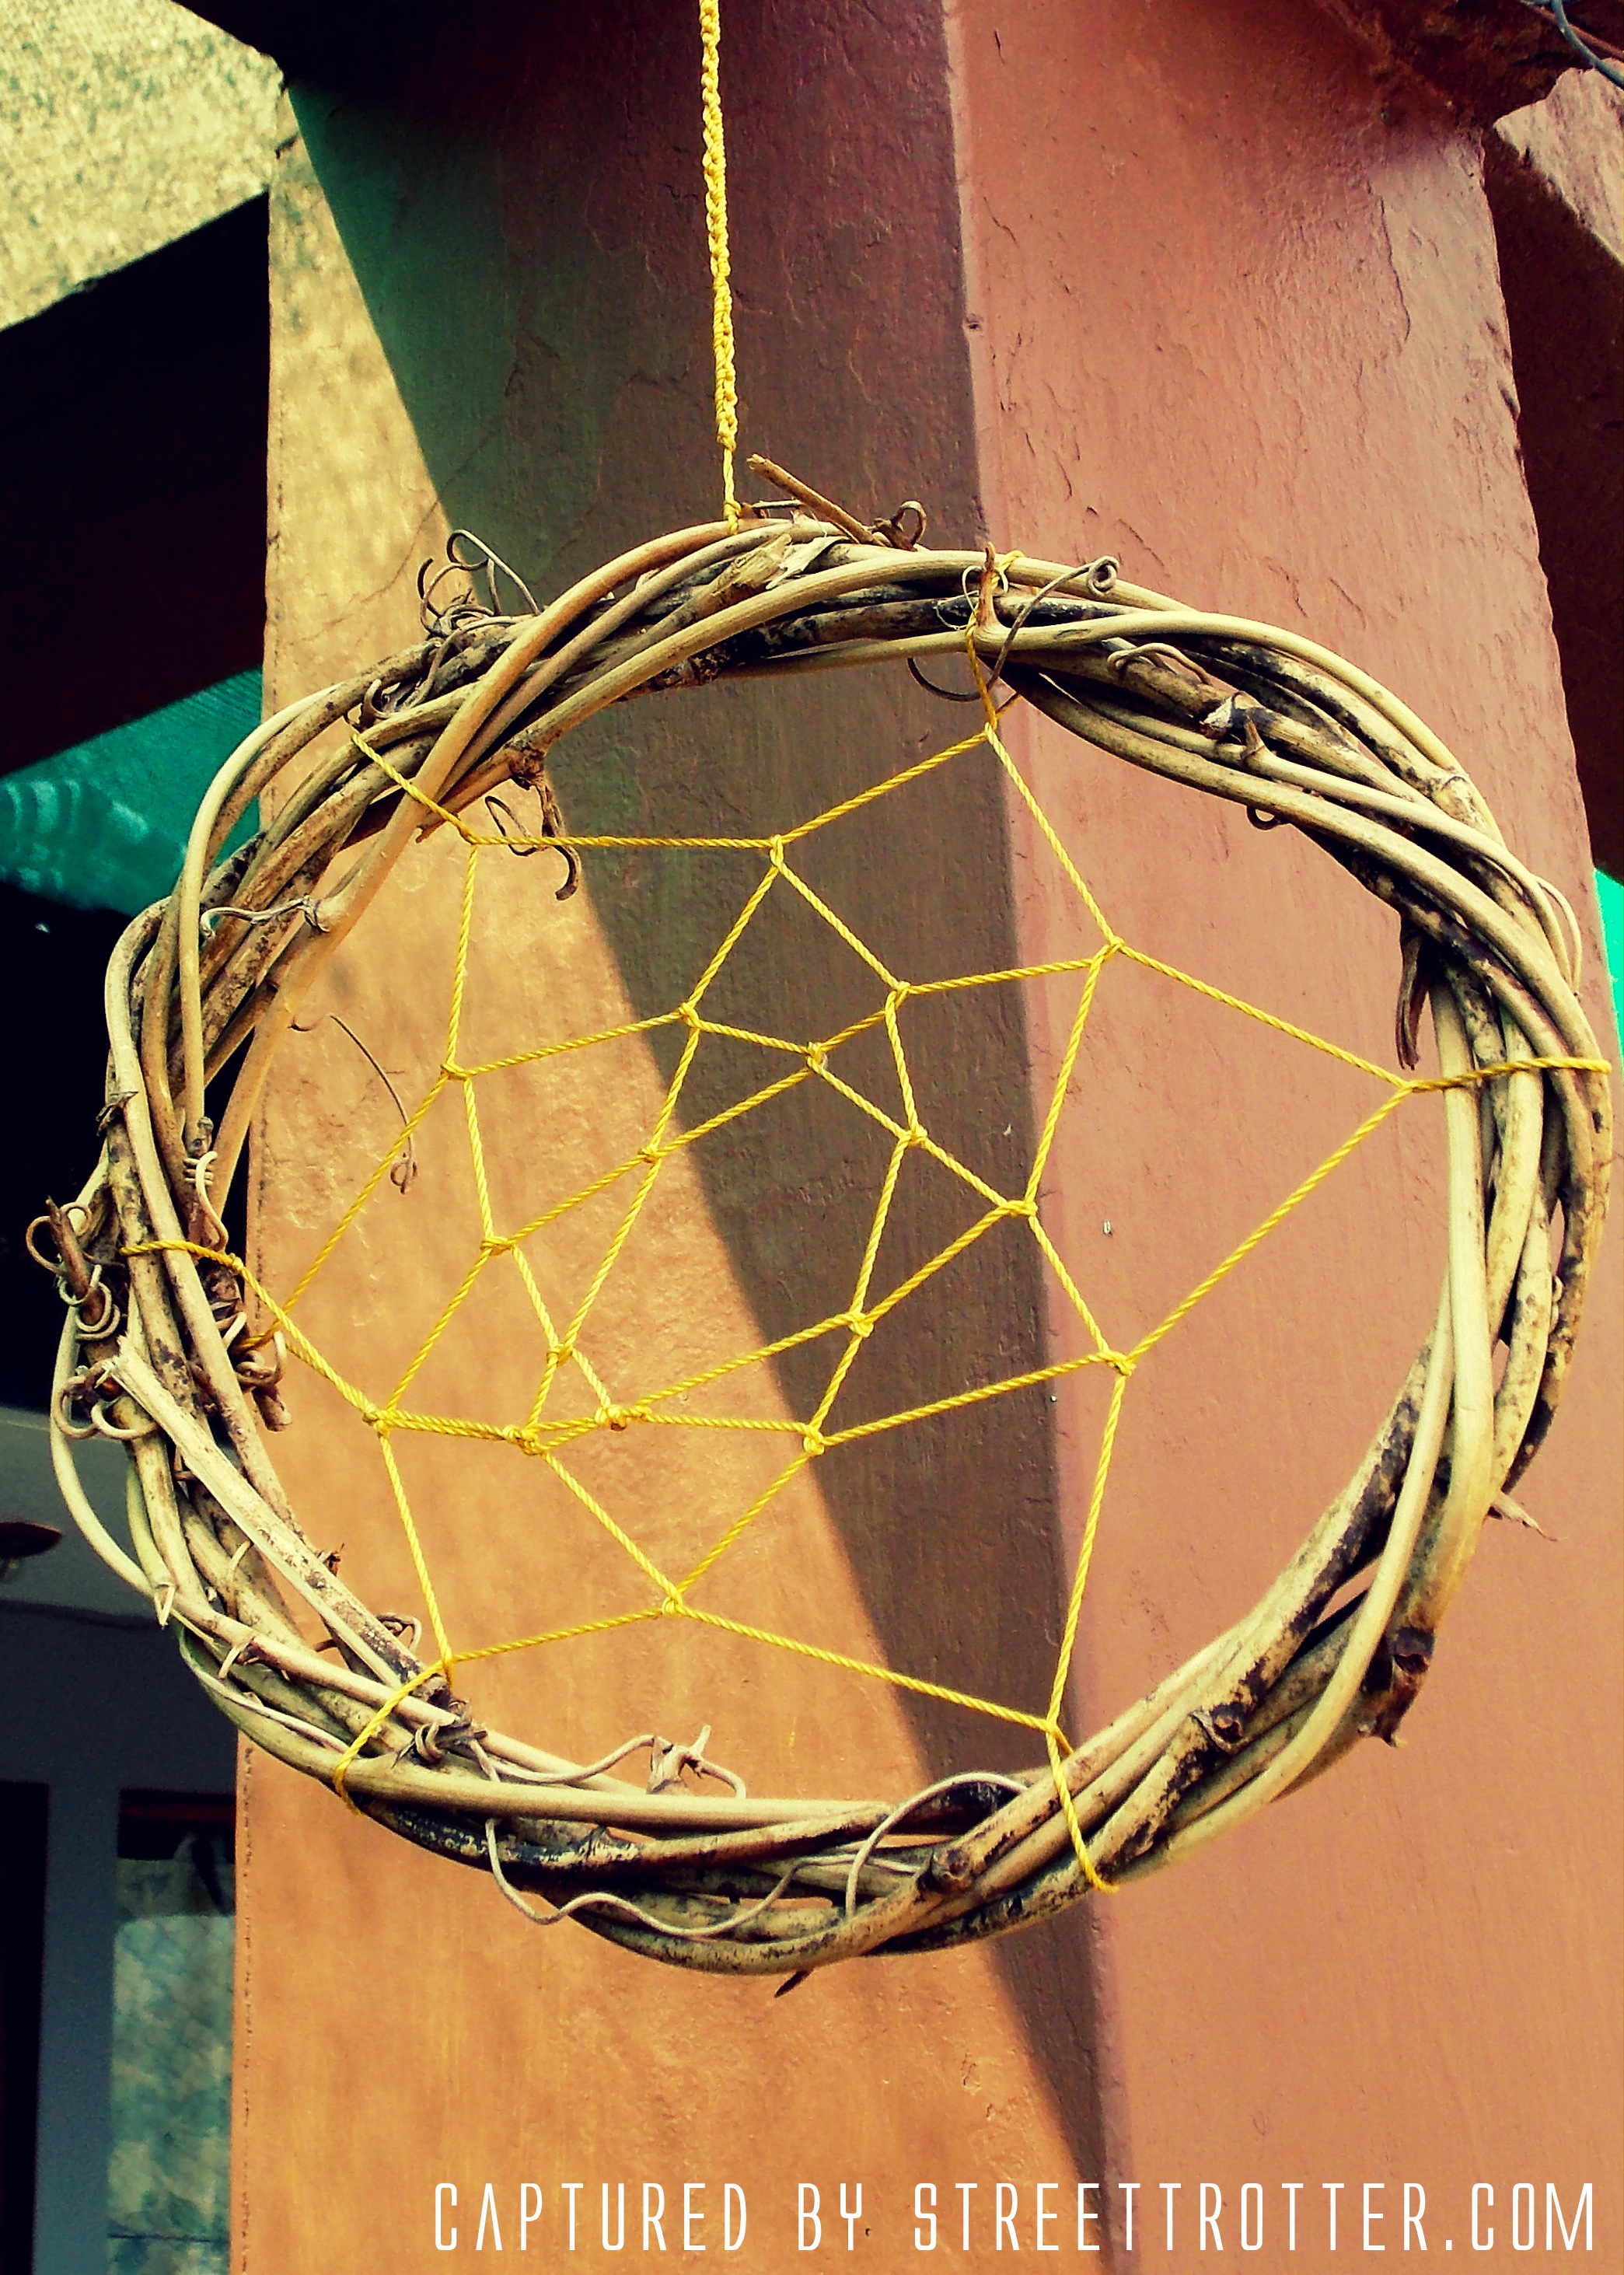 How Are Dream Catchers Made KEEPING THE 'LEGEND OF THE DREAM CATCHER' ALIVE STREETTROTTER 31